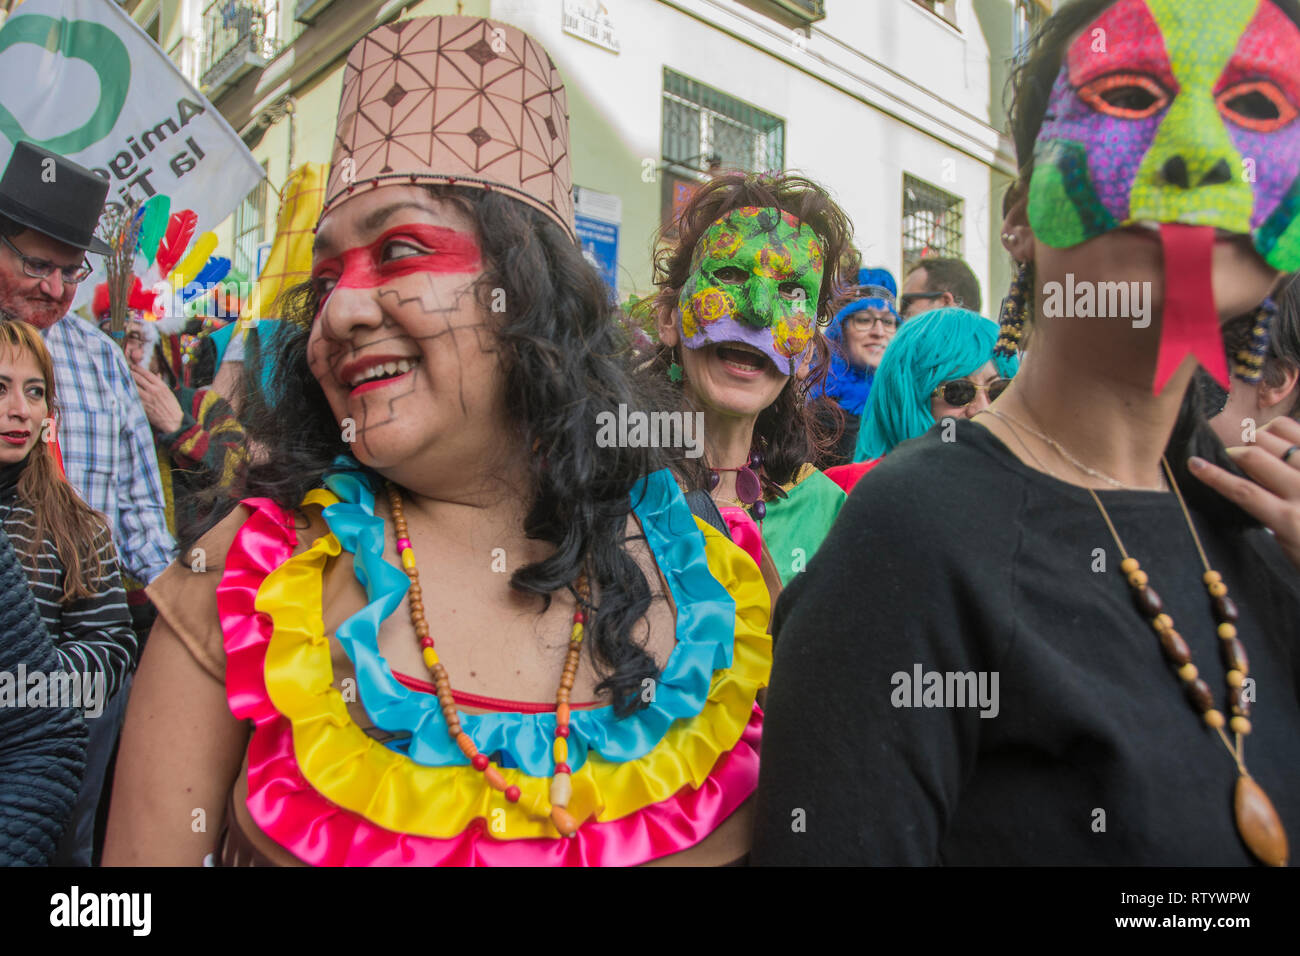 Madrid, Spain. 03rd Mar, 2019. Multicultural carnival on the streets of the neighbourhood of Lavapiés. In the picture a group of musicians with mask of pachamama Credit: Alberto Sibaja Ramírez/Alamy Live News Stock Photo